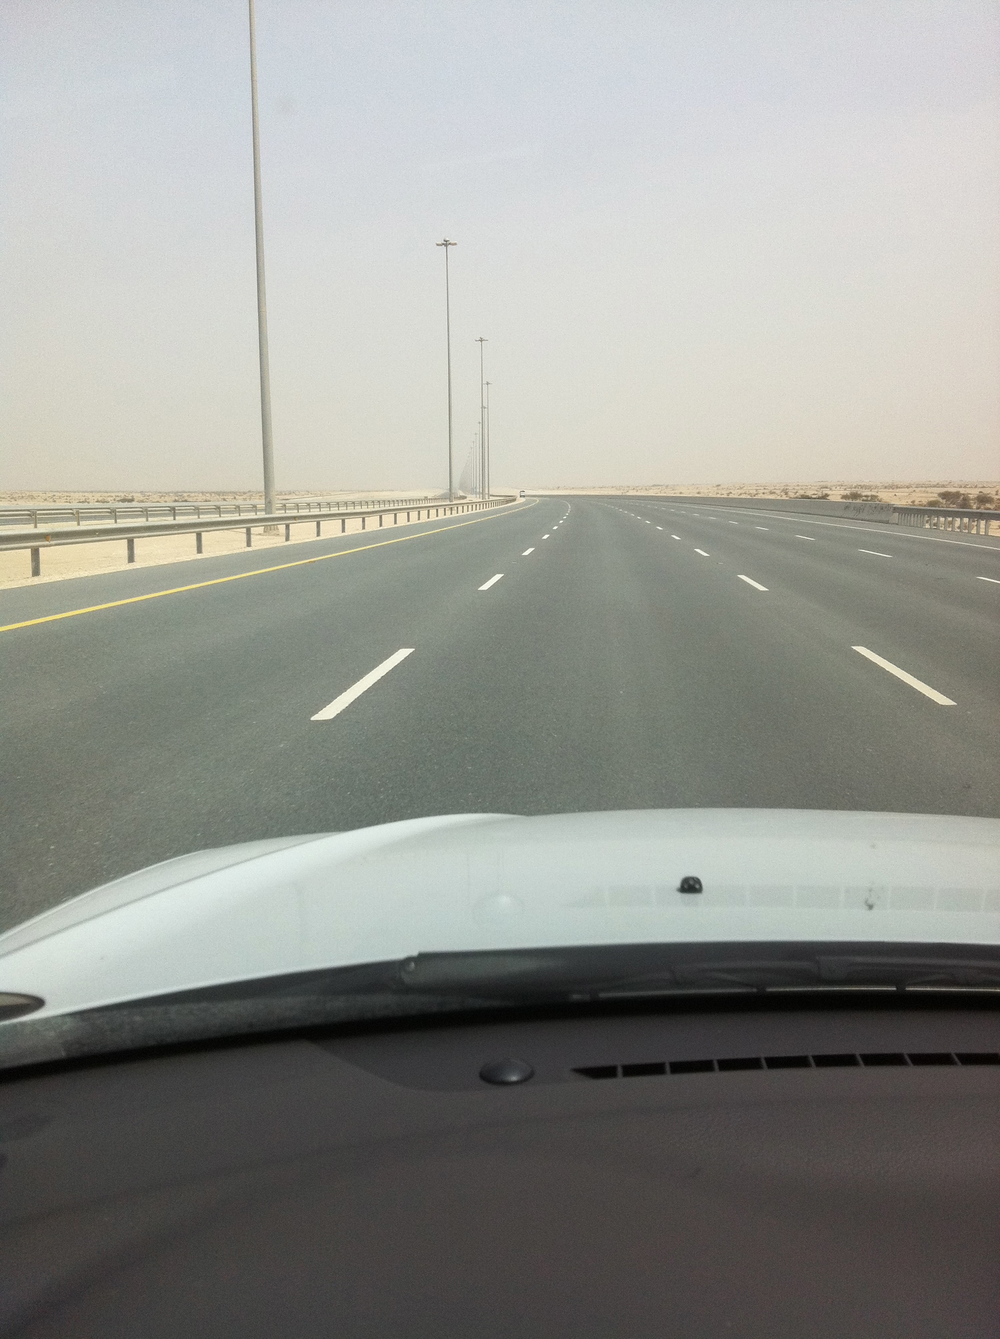 Road leading from Dukhan to Doha.